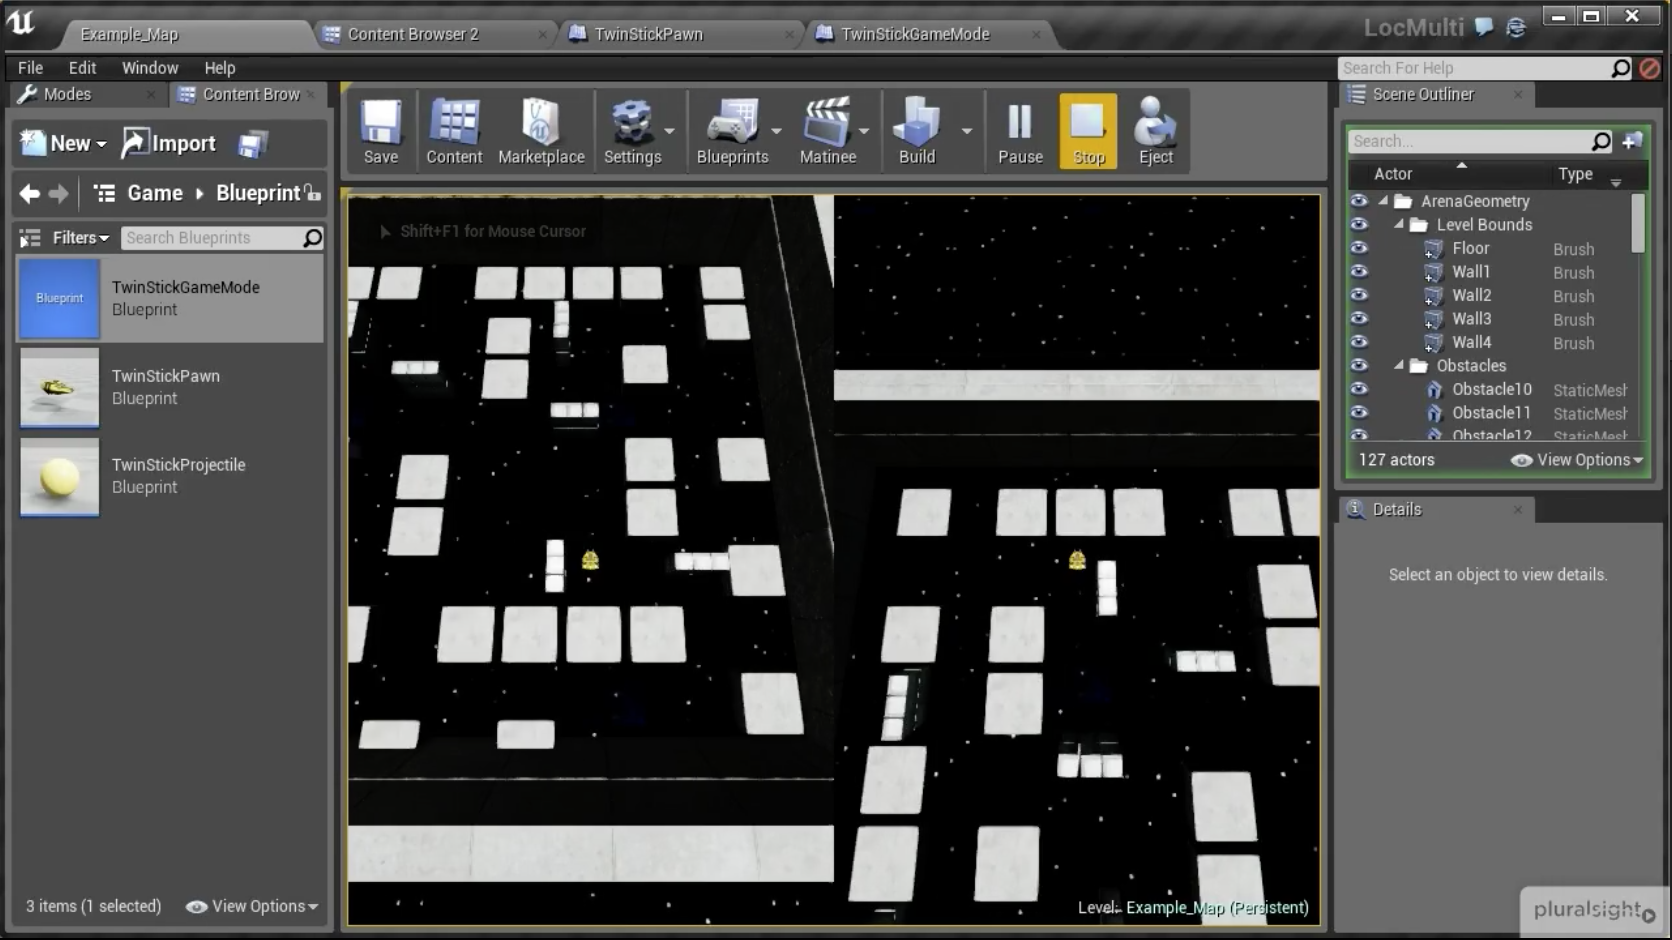 Setting Up a Split Screen Multiplayer Game in Unreal Engine